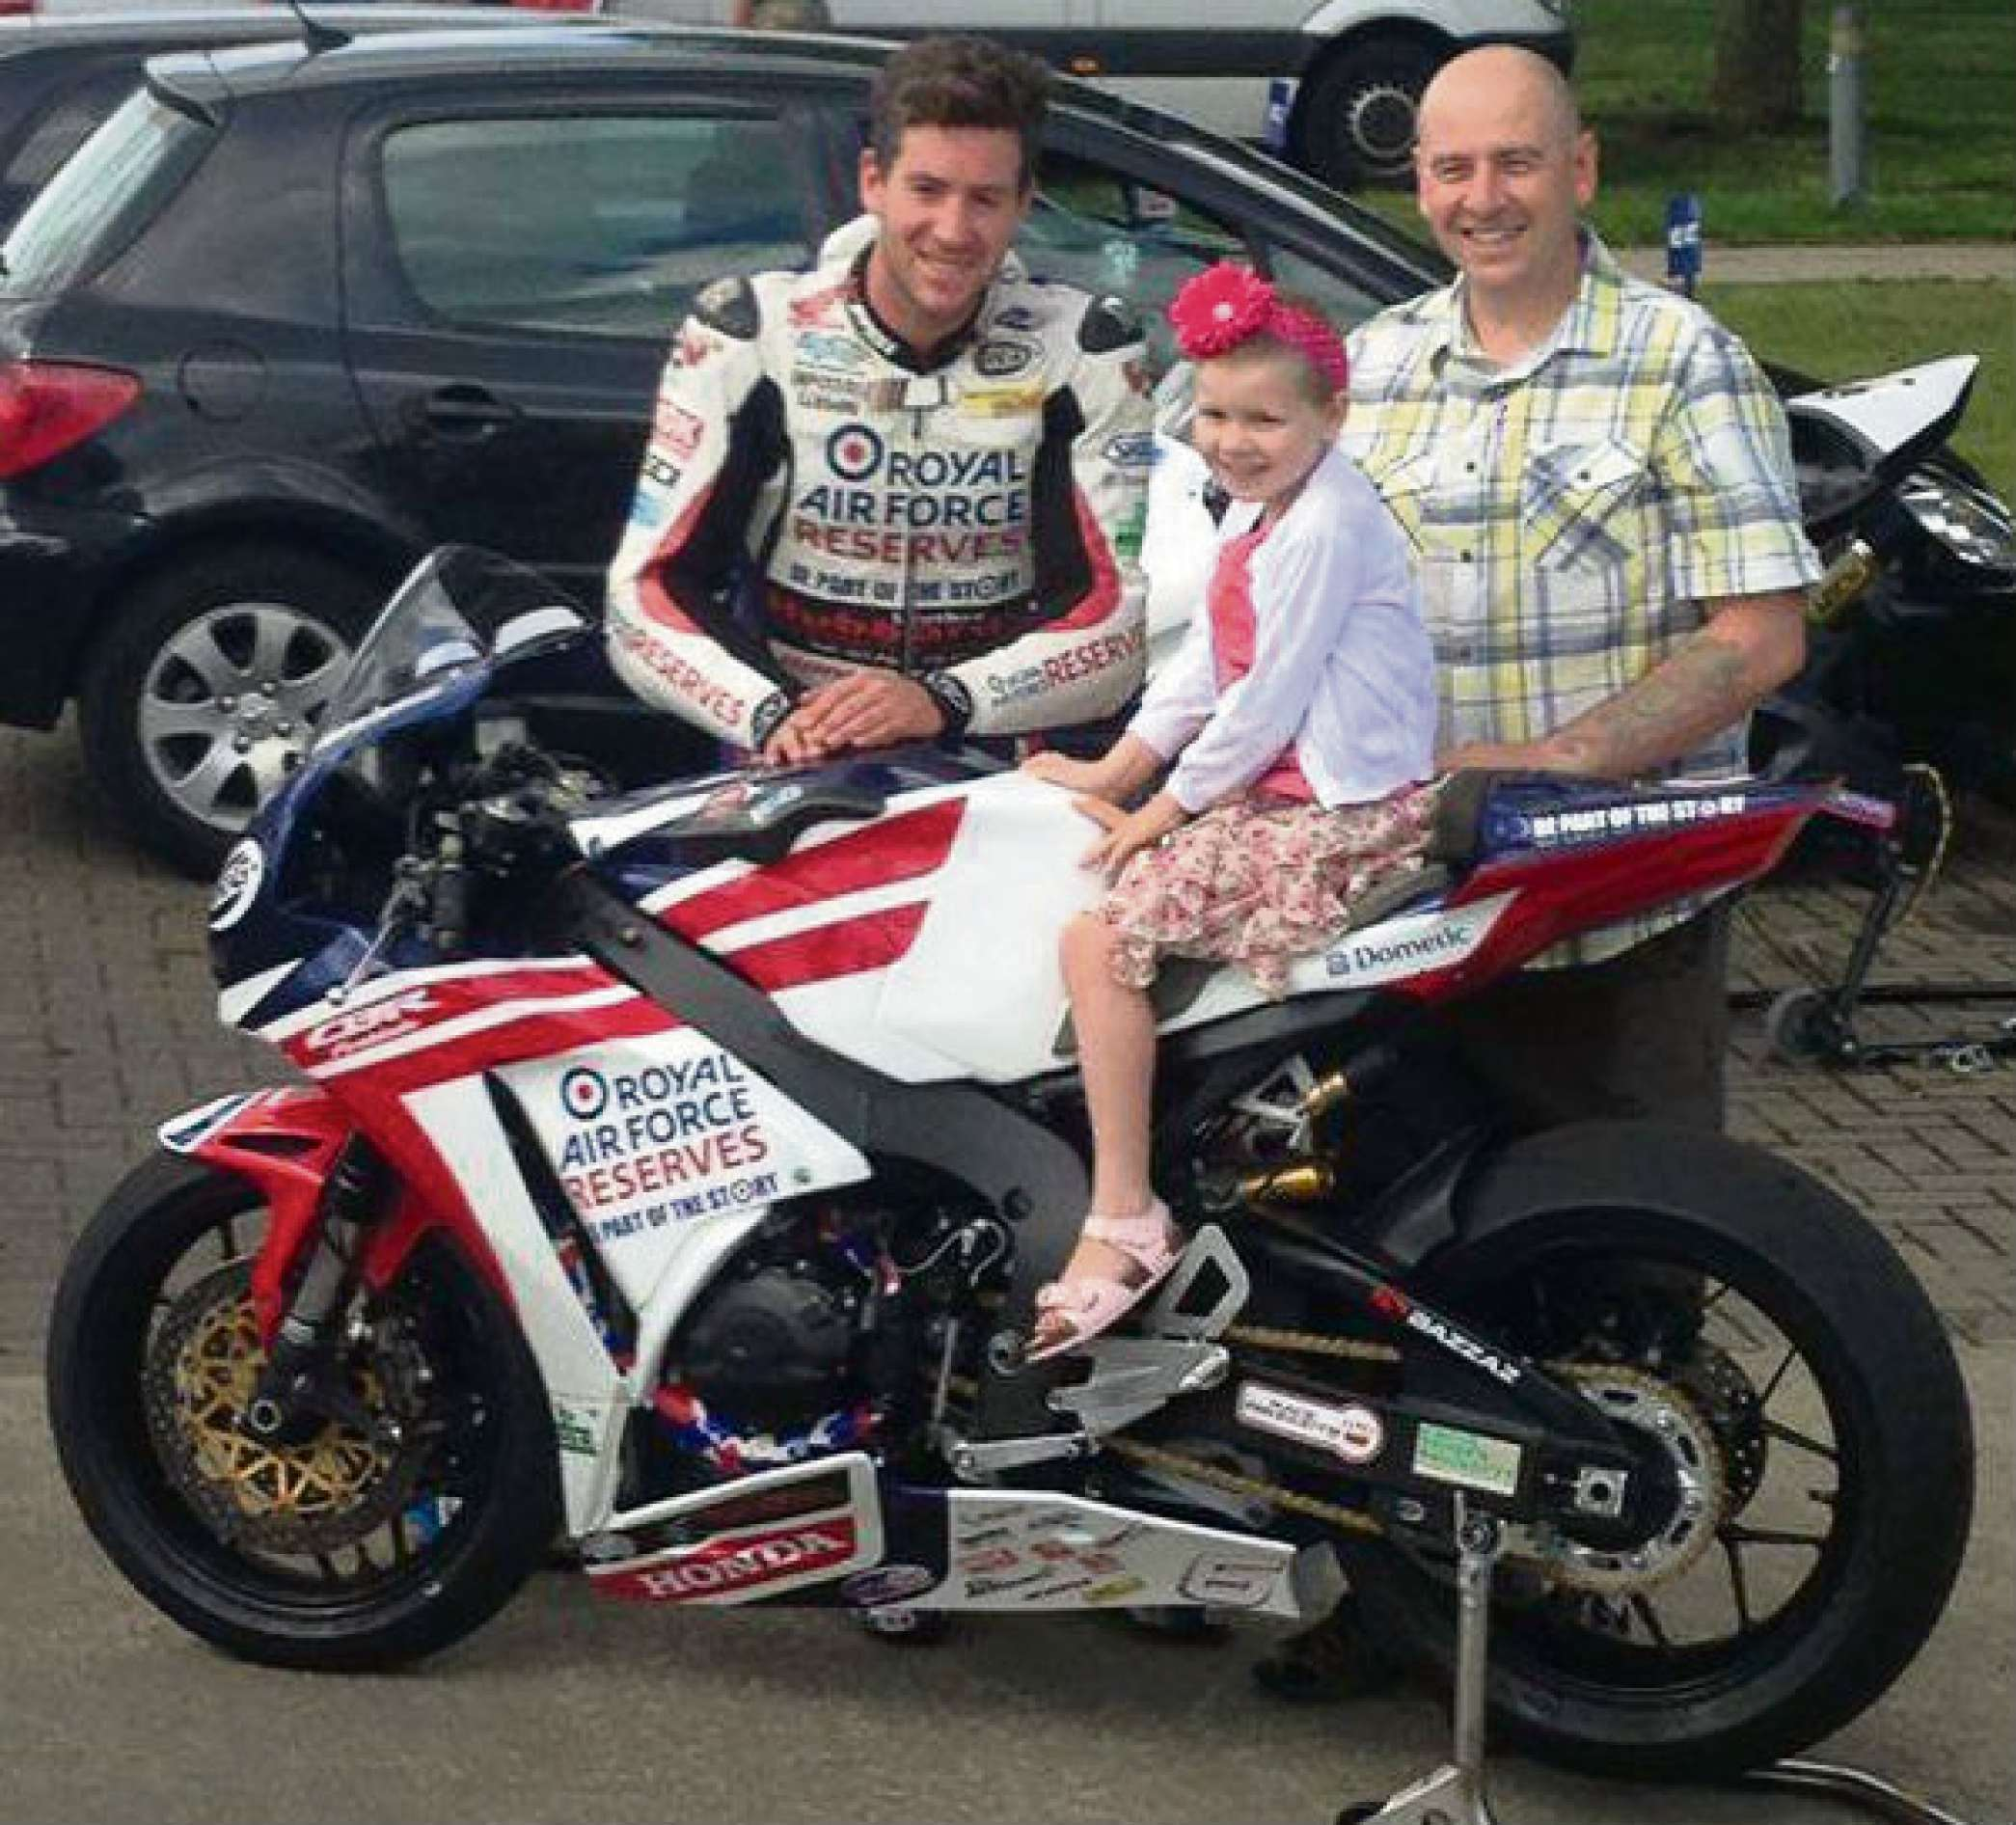 Fraja readmitted to hospital over health concerns as fundraiser Simon Andrews dies in motorbike race crash